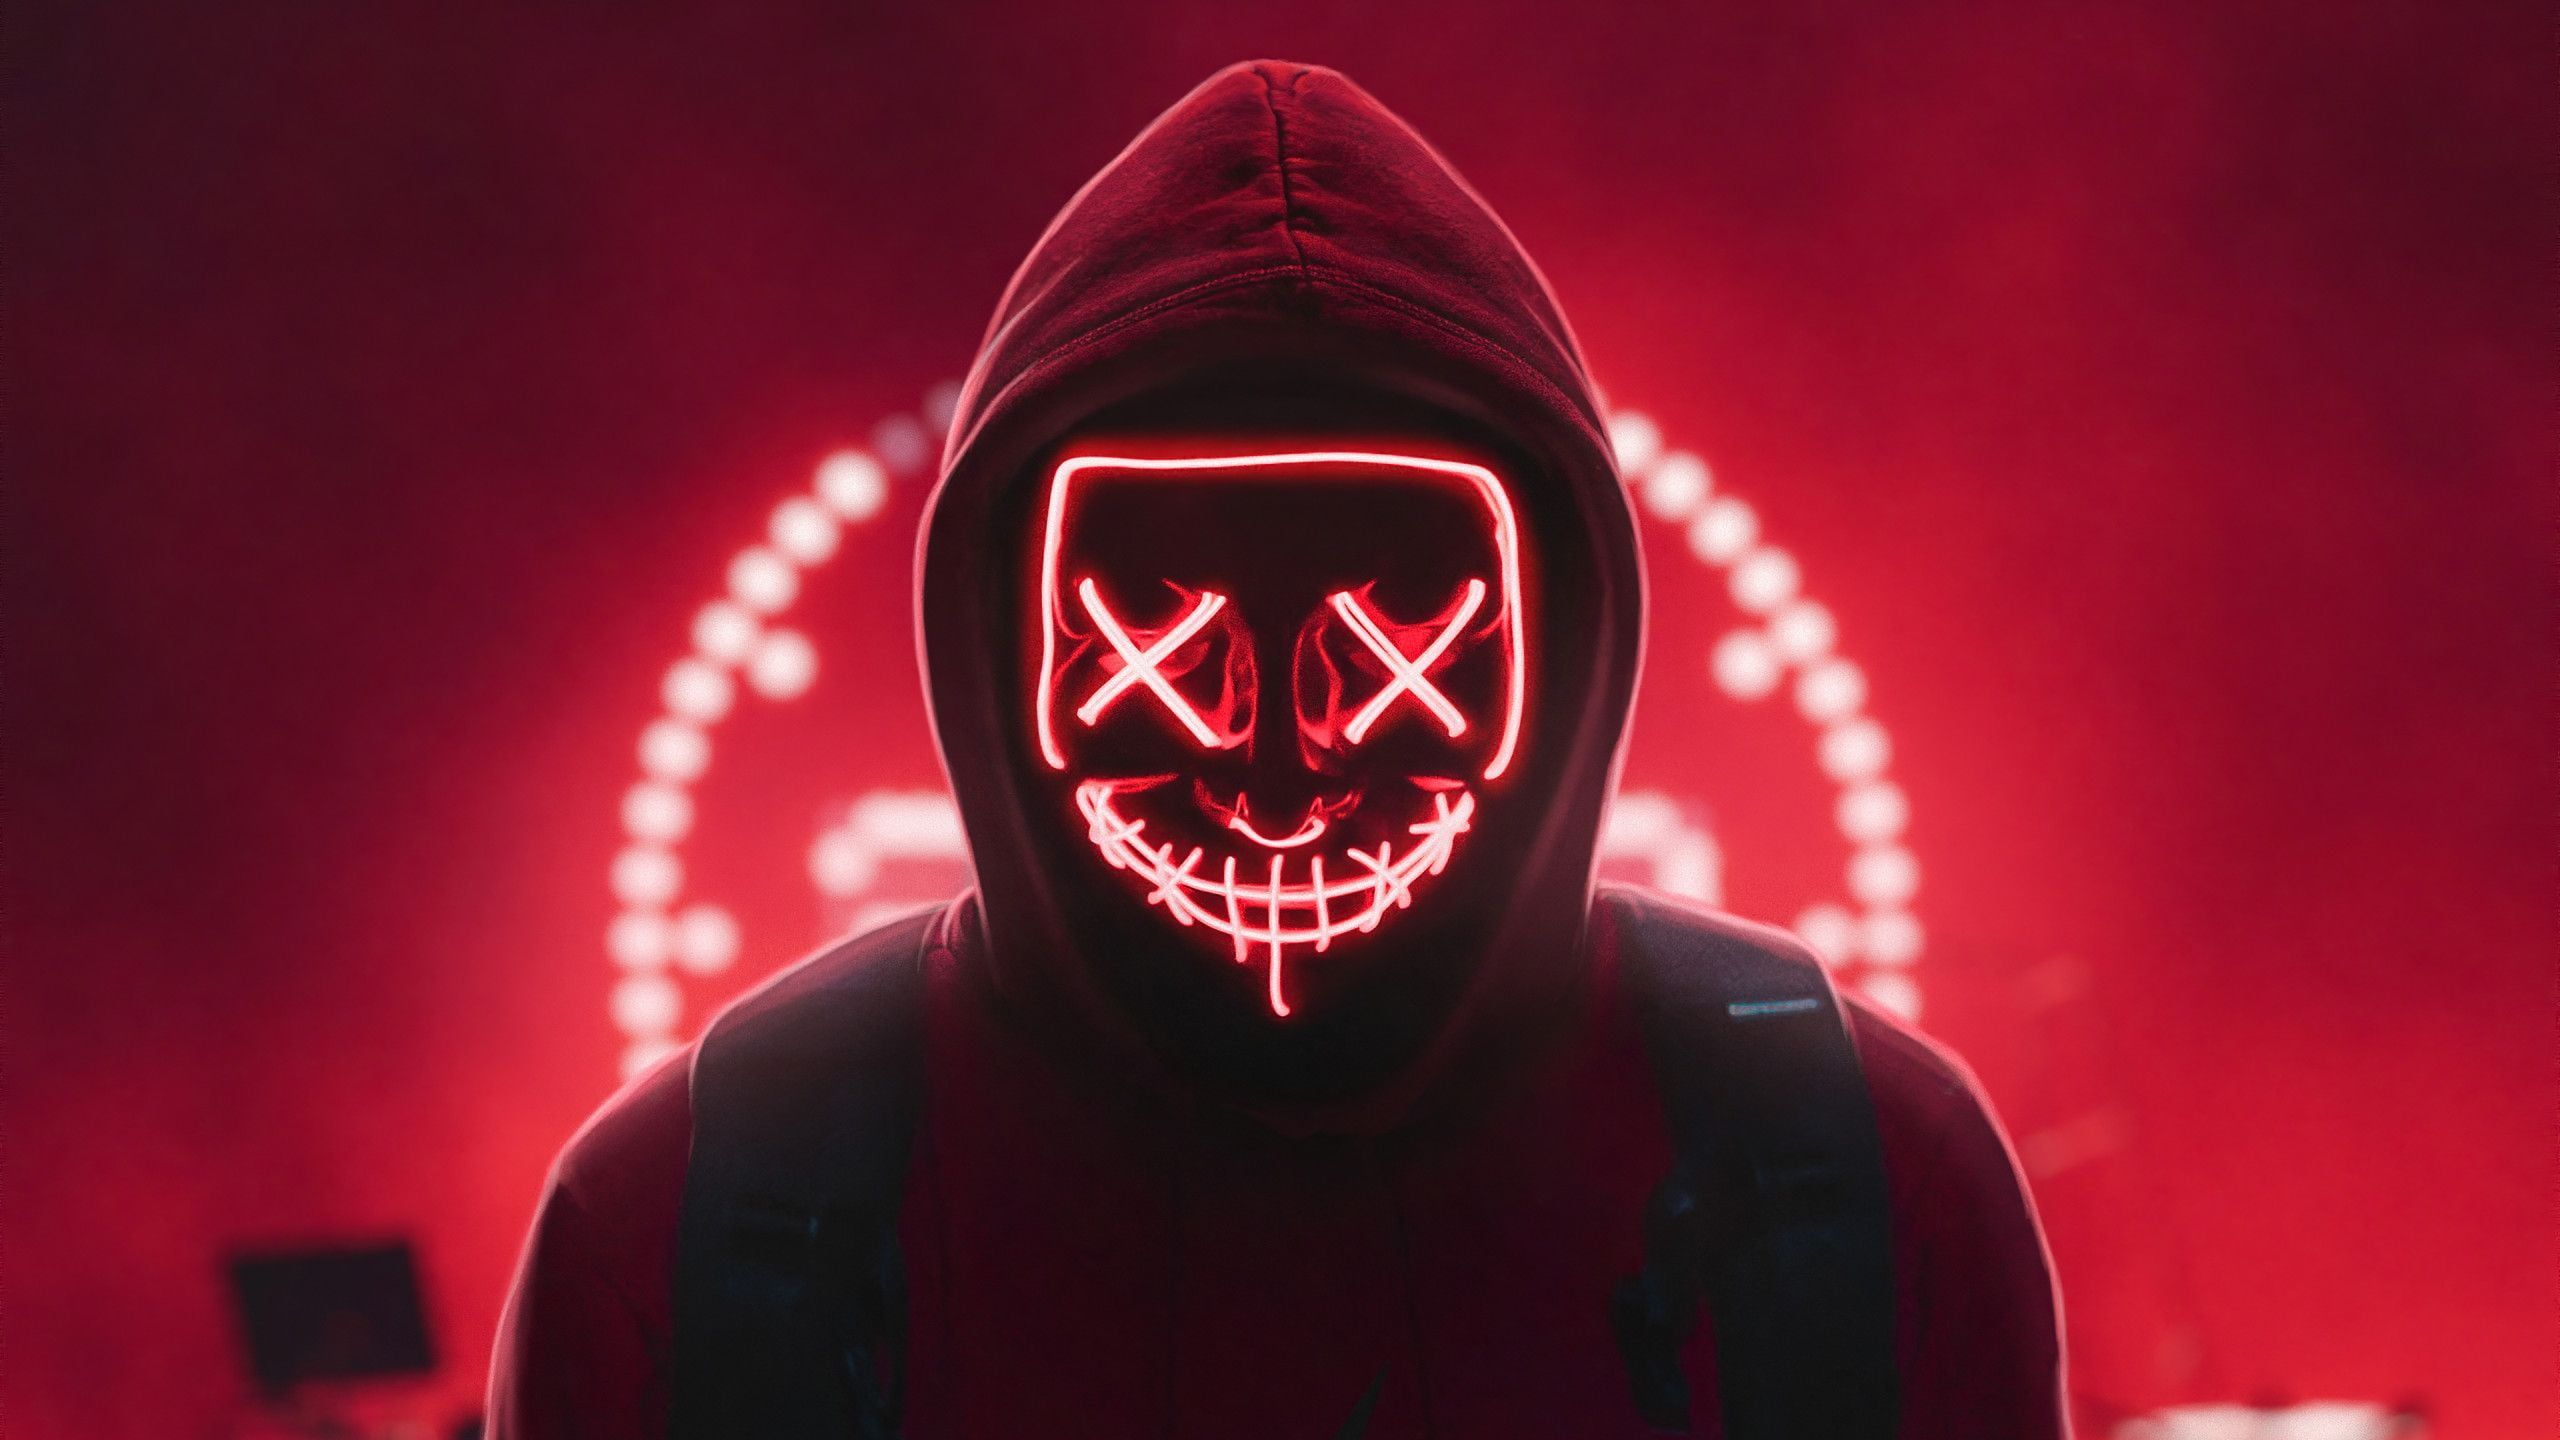 Red Neon Mask Digital Art Leds Red Neon Mask Creepy Eyes Creepy Photoshop Lights Faceless Hoods Artwor Creepy Eyes Marvel Wallpaper Hd Neon Wallpaper